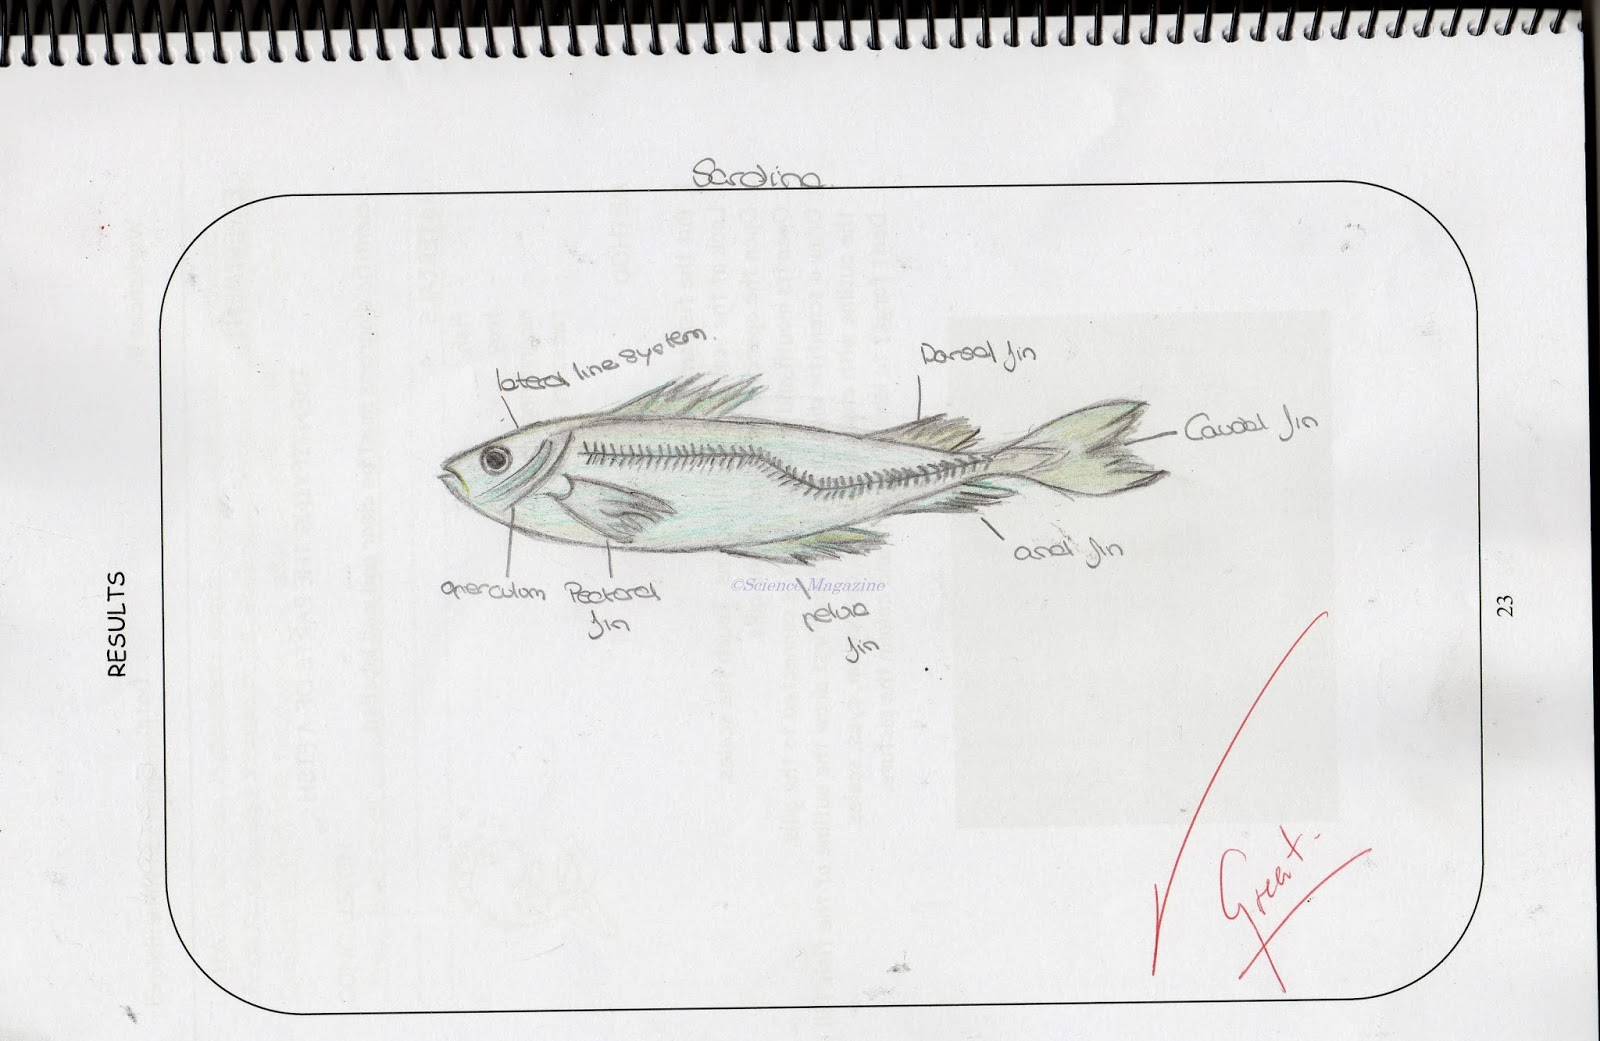 Science Magazine Studying The Anatomy Of A Fish And Drawing A Scientific Diagram